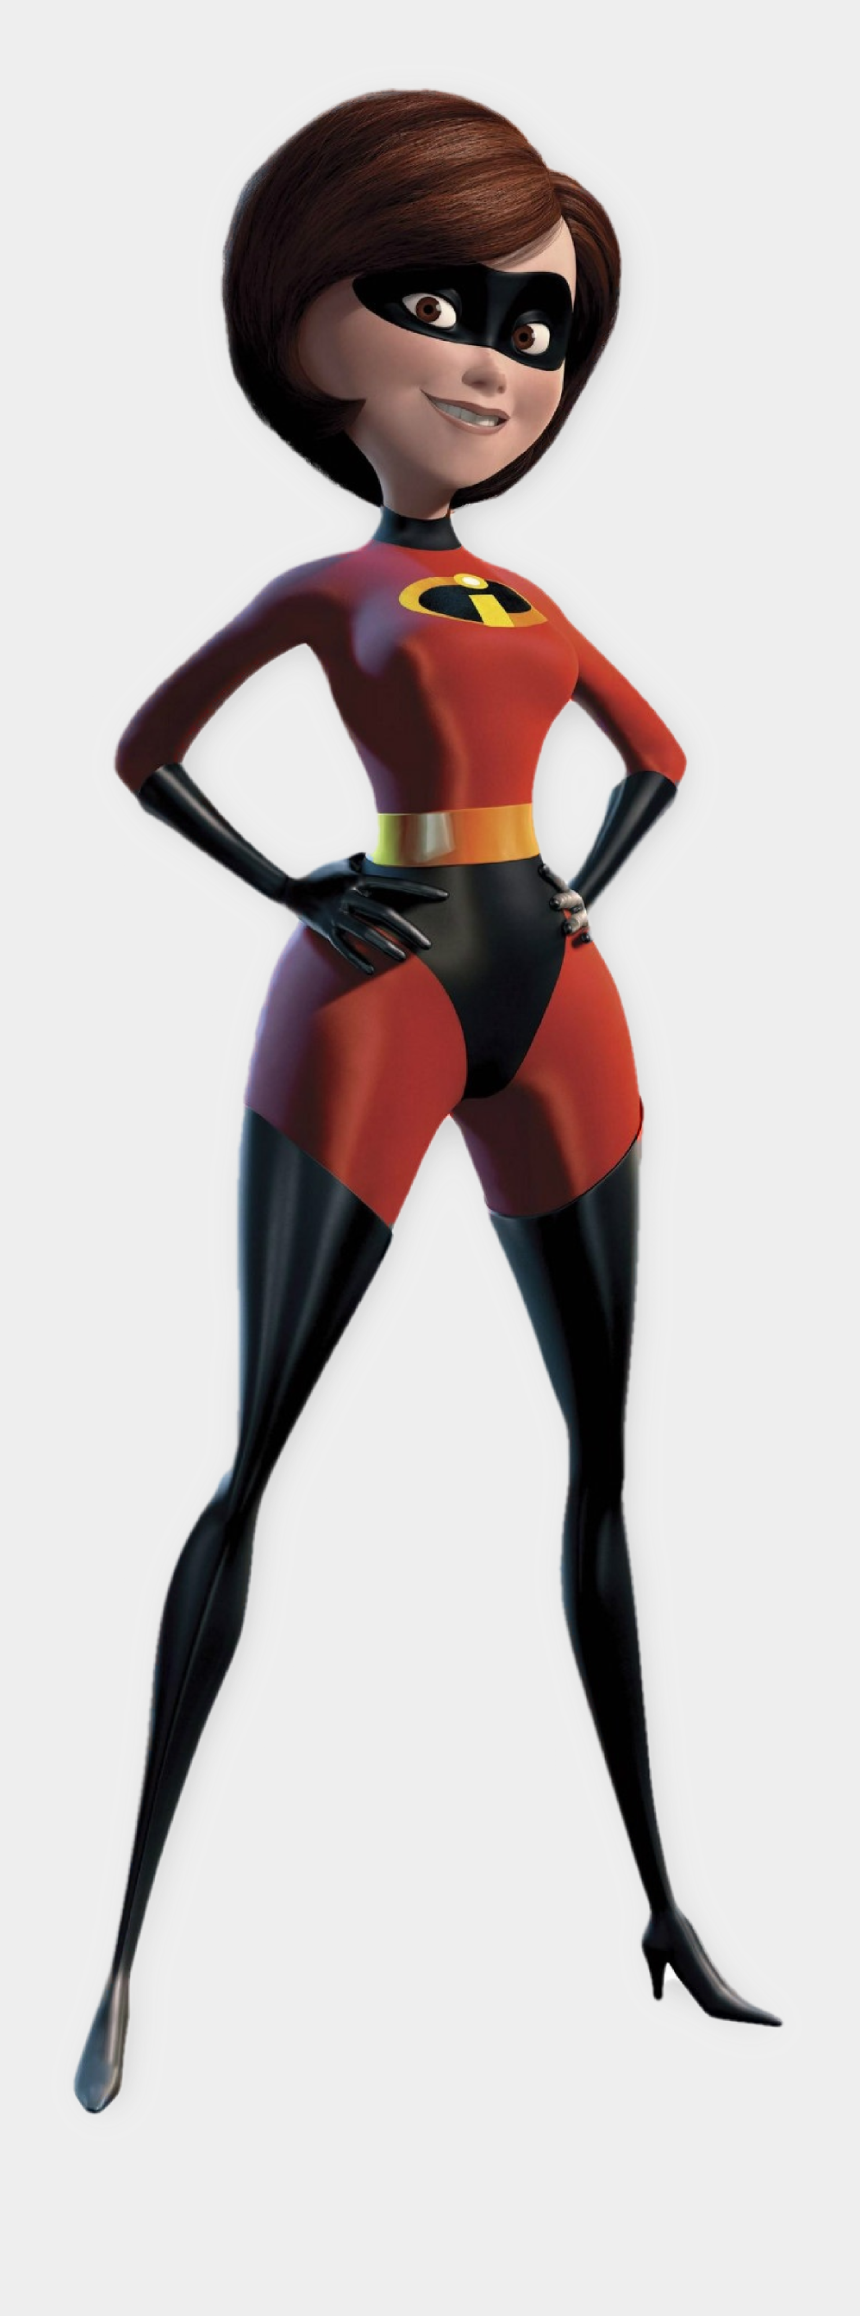 incredibles 2 clipart, Cartoons - #incredibles #incredibles2 #incrediblefamily #dashincredible - Mrs Incredible